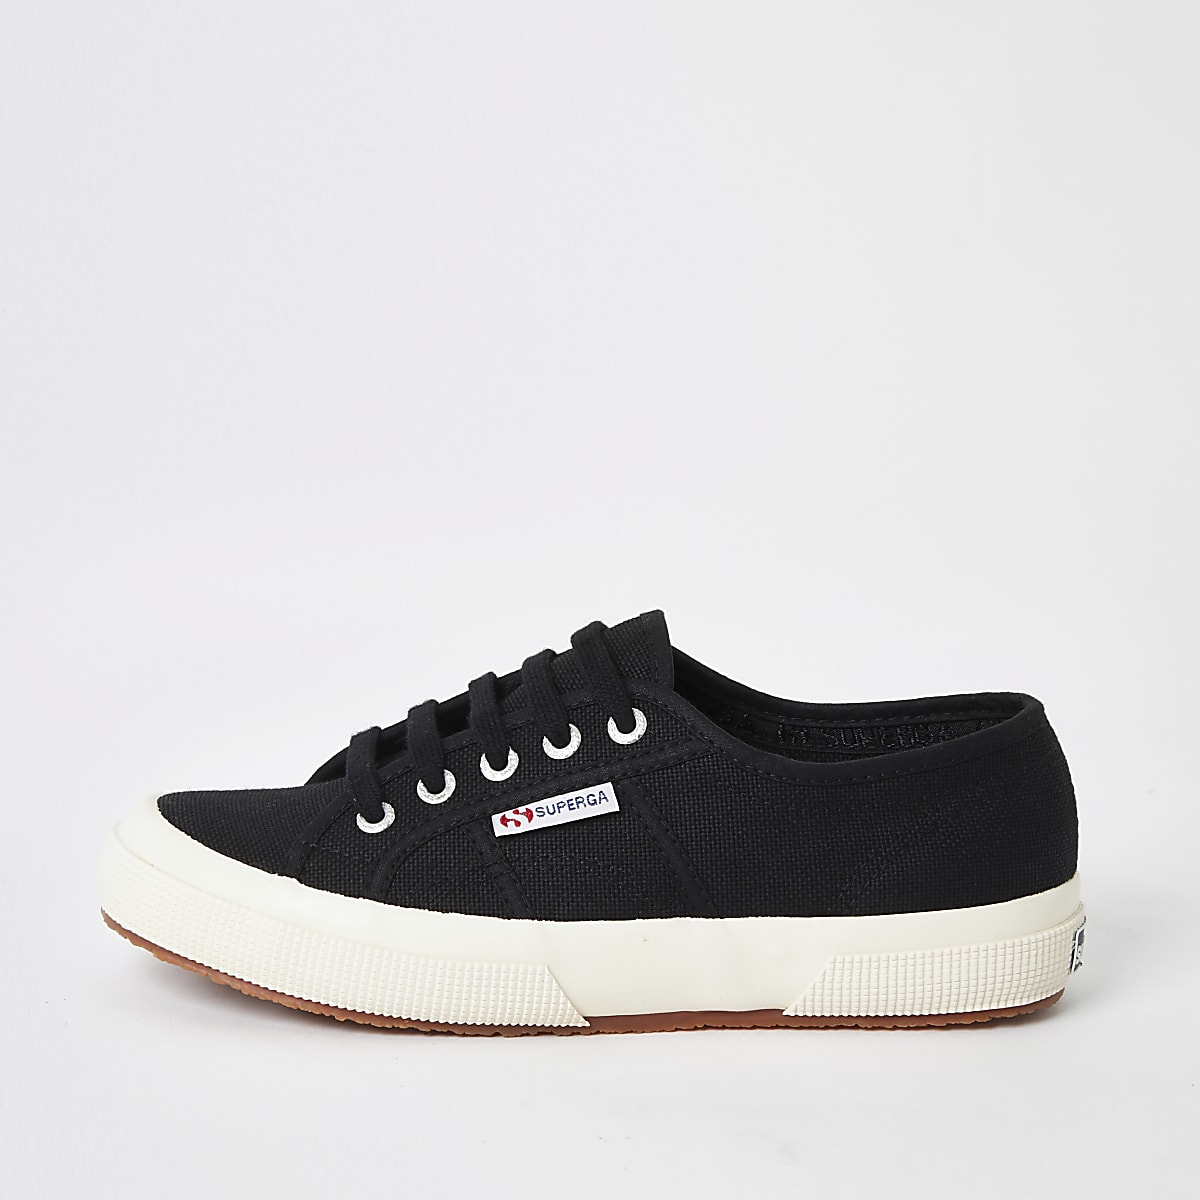 Superga black classic runner trainers